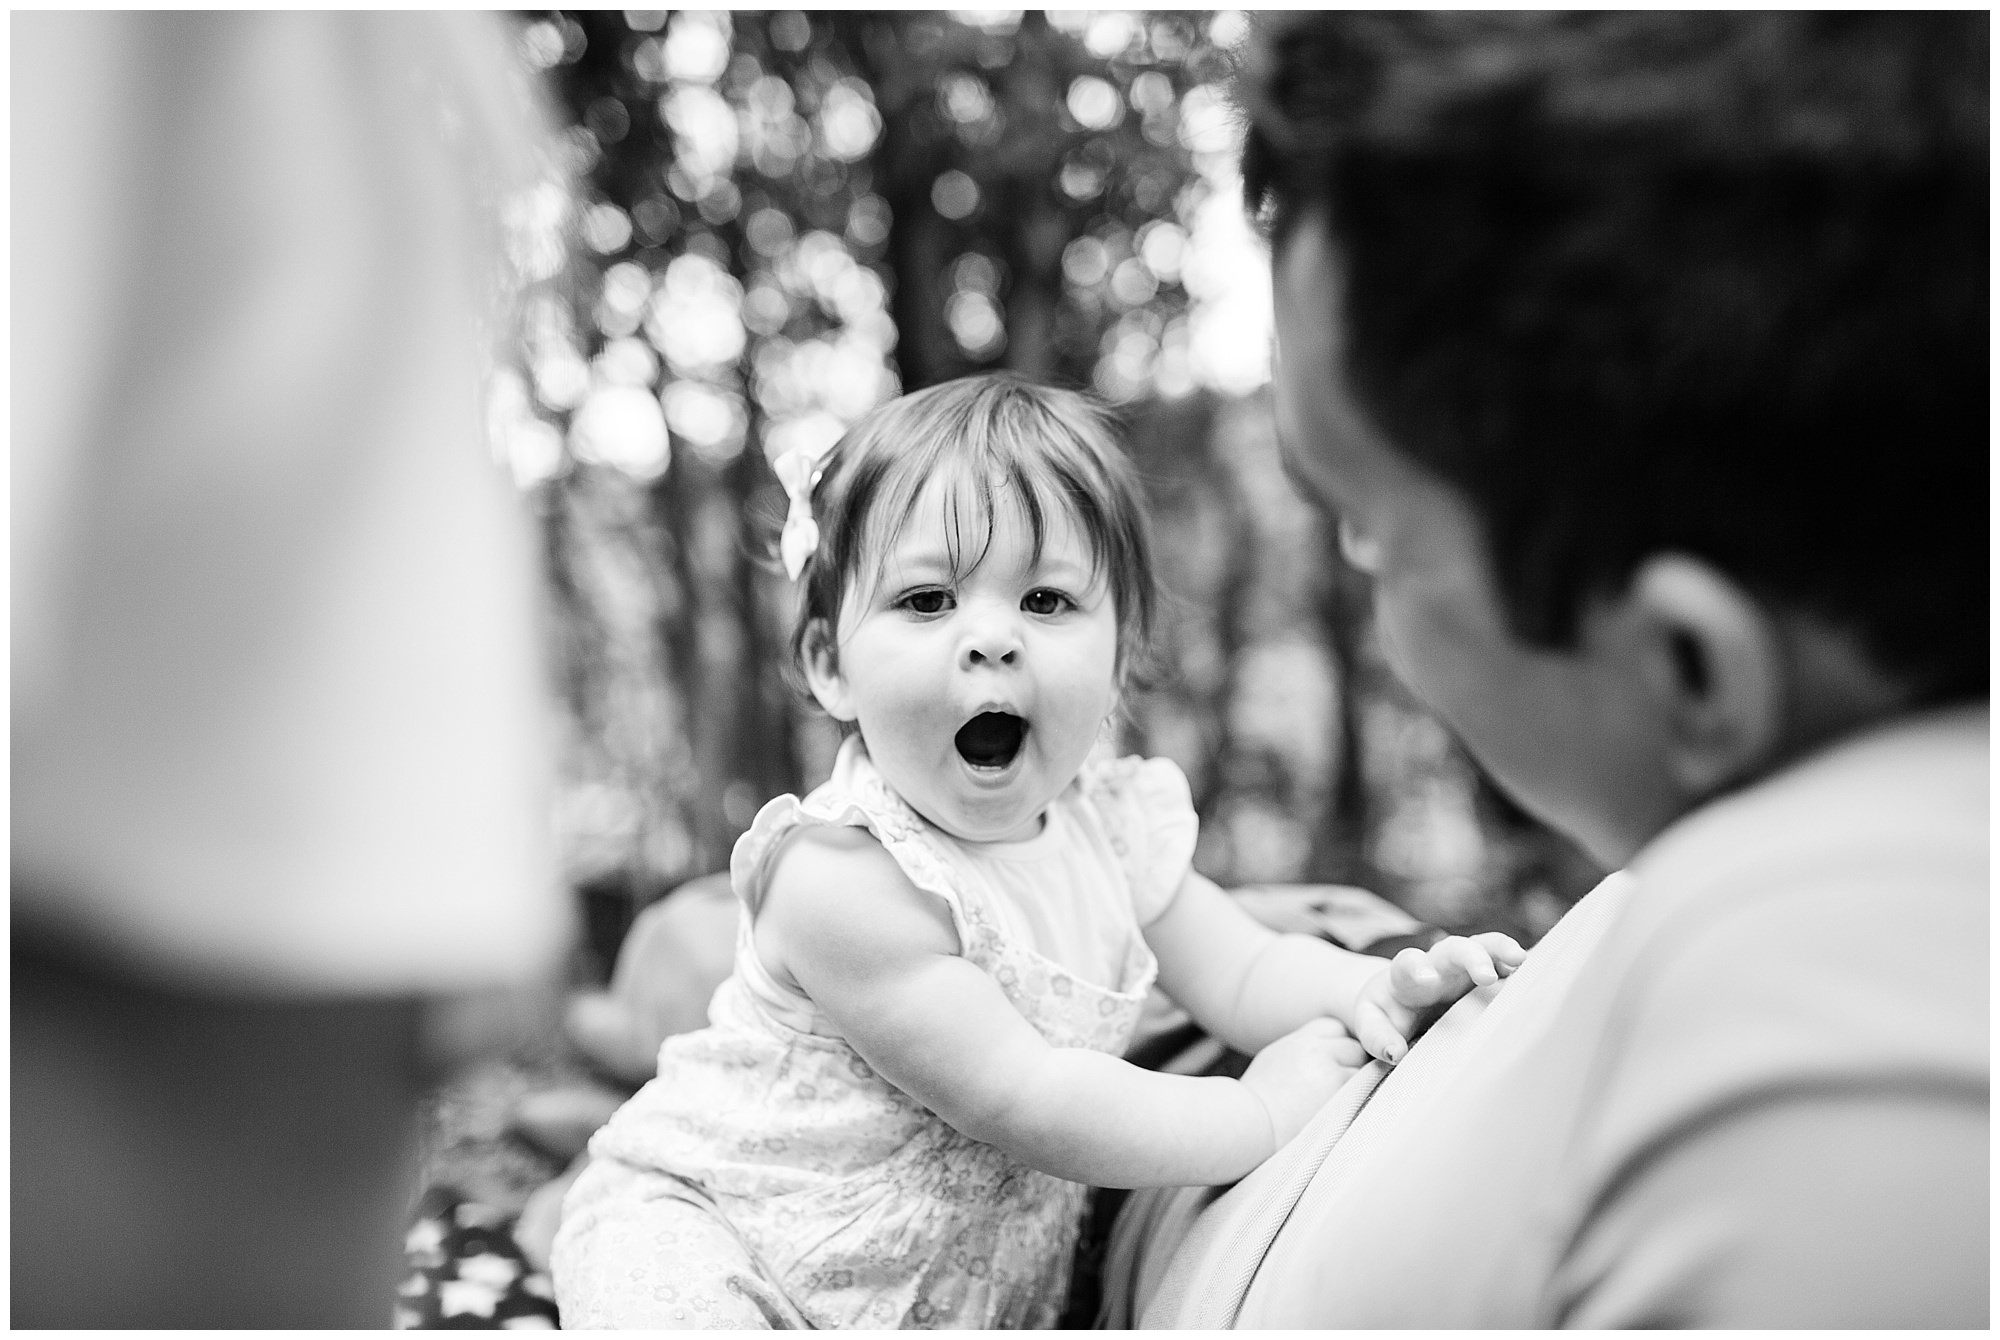 black and white photo of 1 year old girl yawning